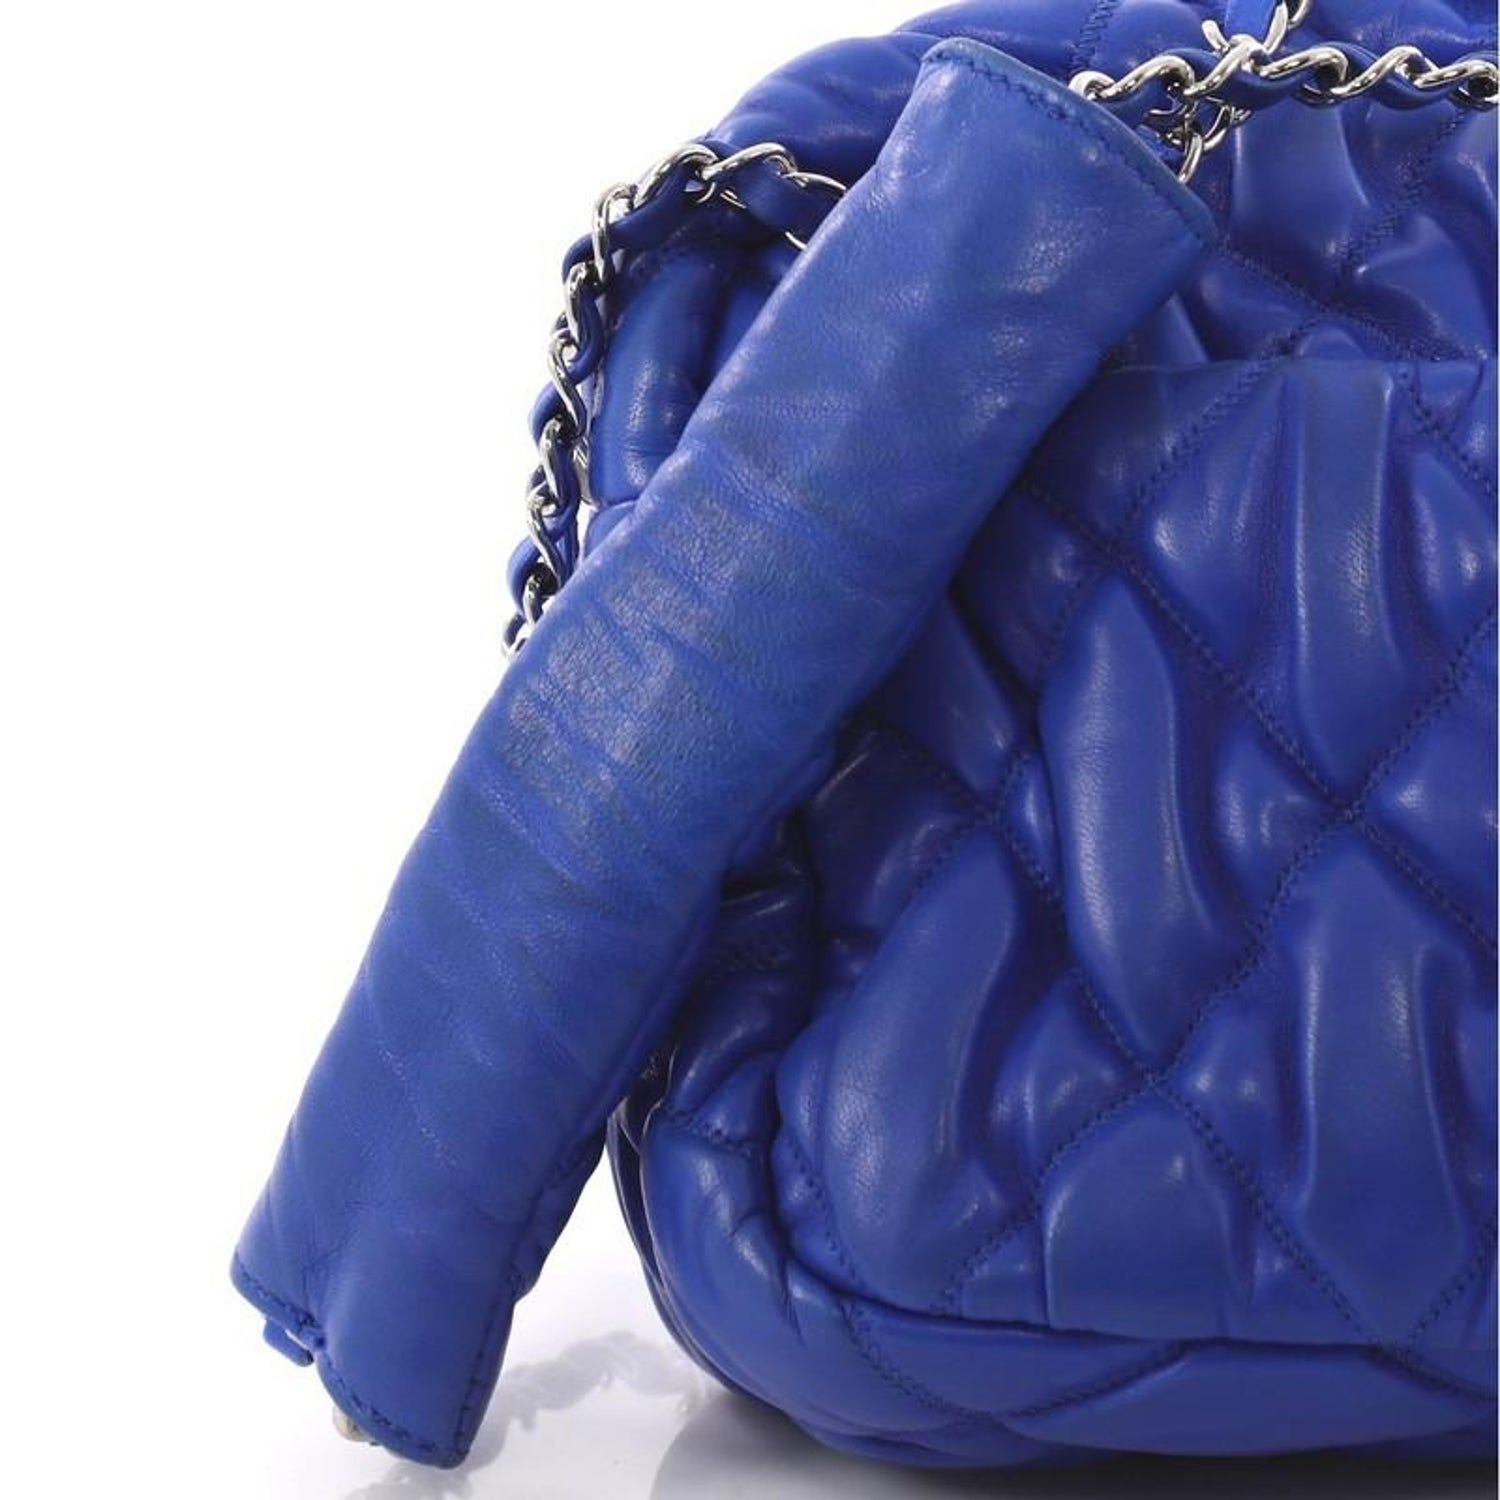 84759c916a69 Chanel Bubble Camera Bag Quilted Lambskin Small For Sale at 1stdibs